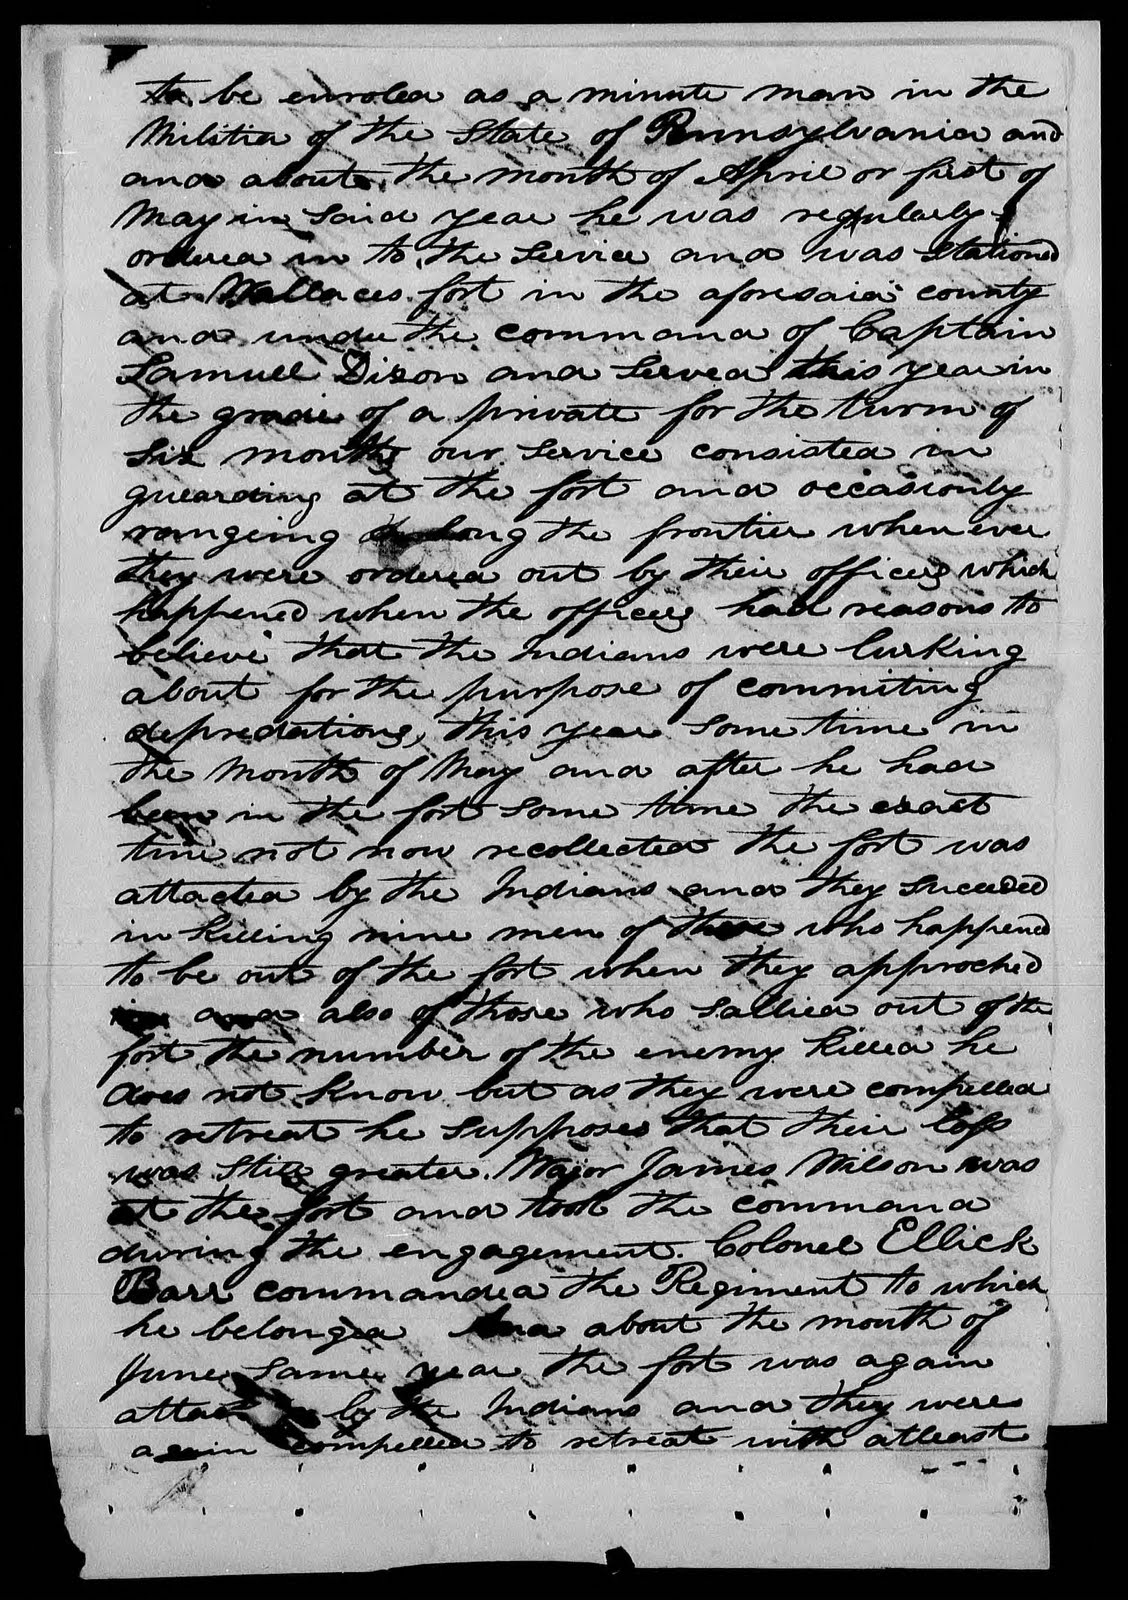 to be enrolled as a minute man in the militia of the state of pennsylvania and on or about the month of aril or first of may in said year he was